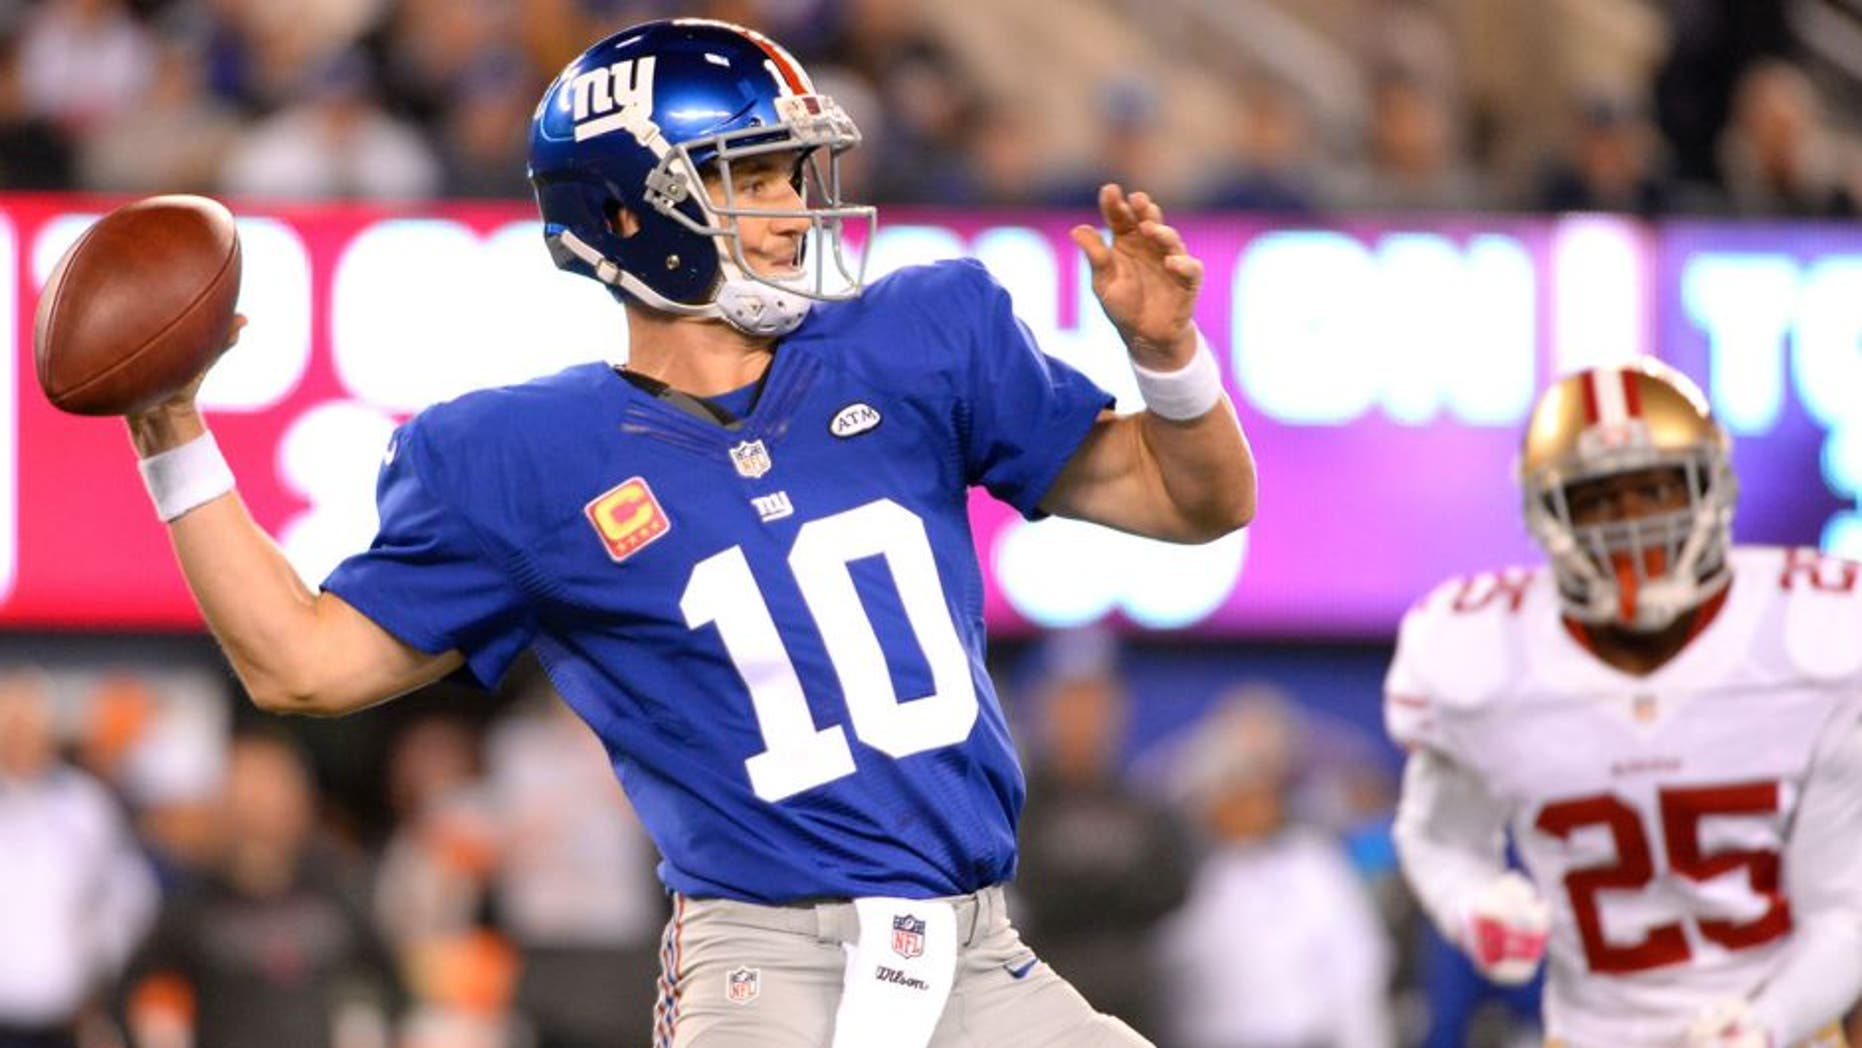 Oct 11, 2015; East Rutherford, NJ, USA; New York Giants quarterback Eli Manning (10) throws the ball in the first quarter against the San Francisco 49ers at MetLife Stadium. Mandatory Credit: Robert Deutsch-USA TODAY Sports